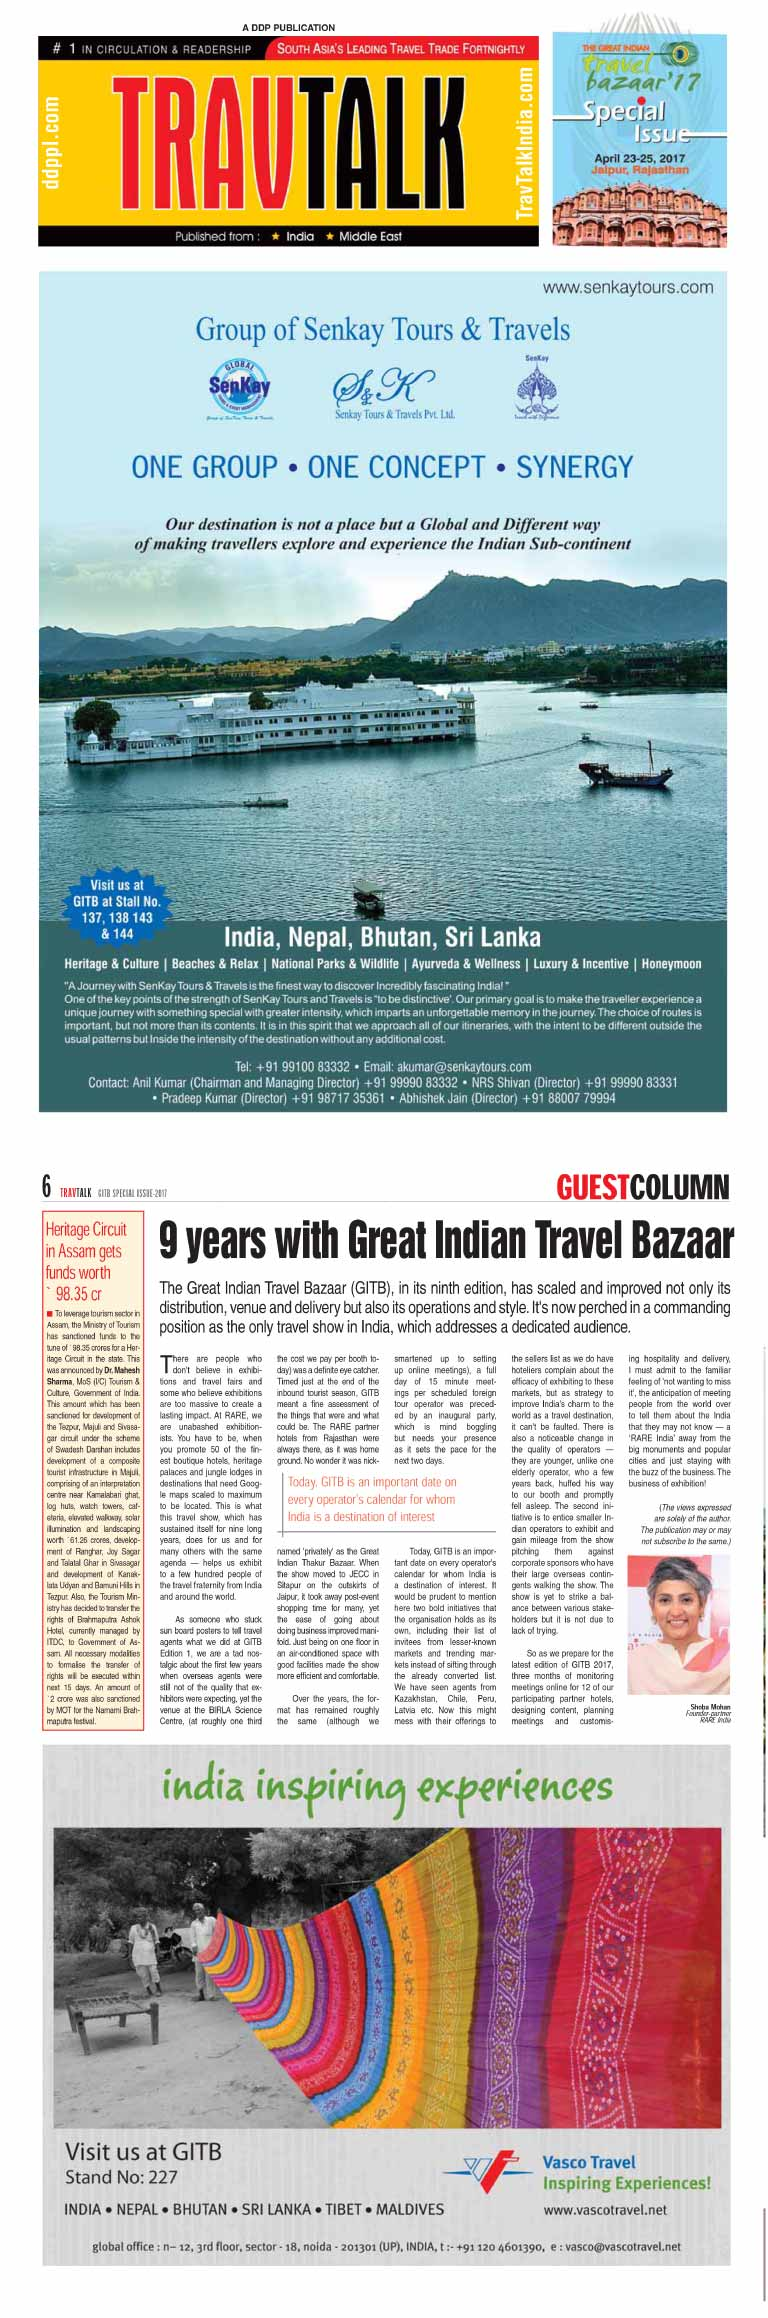 9 years with Great Indian Travel Bazaar